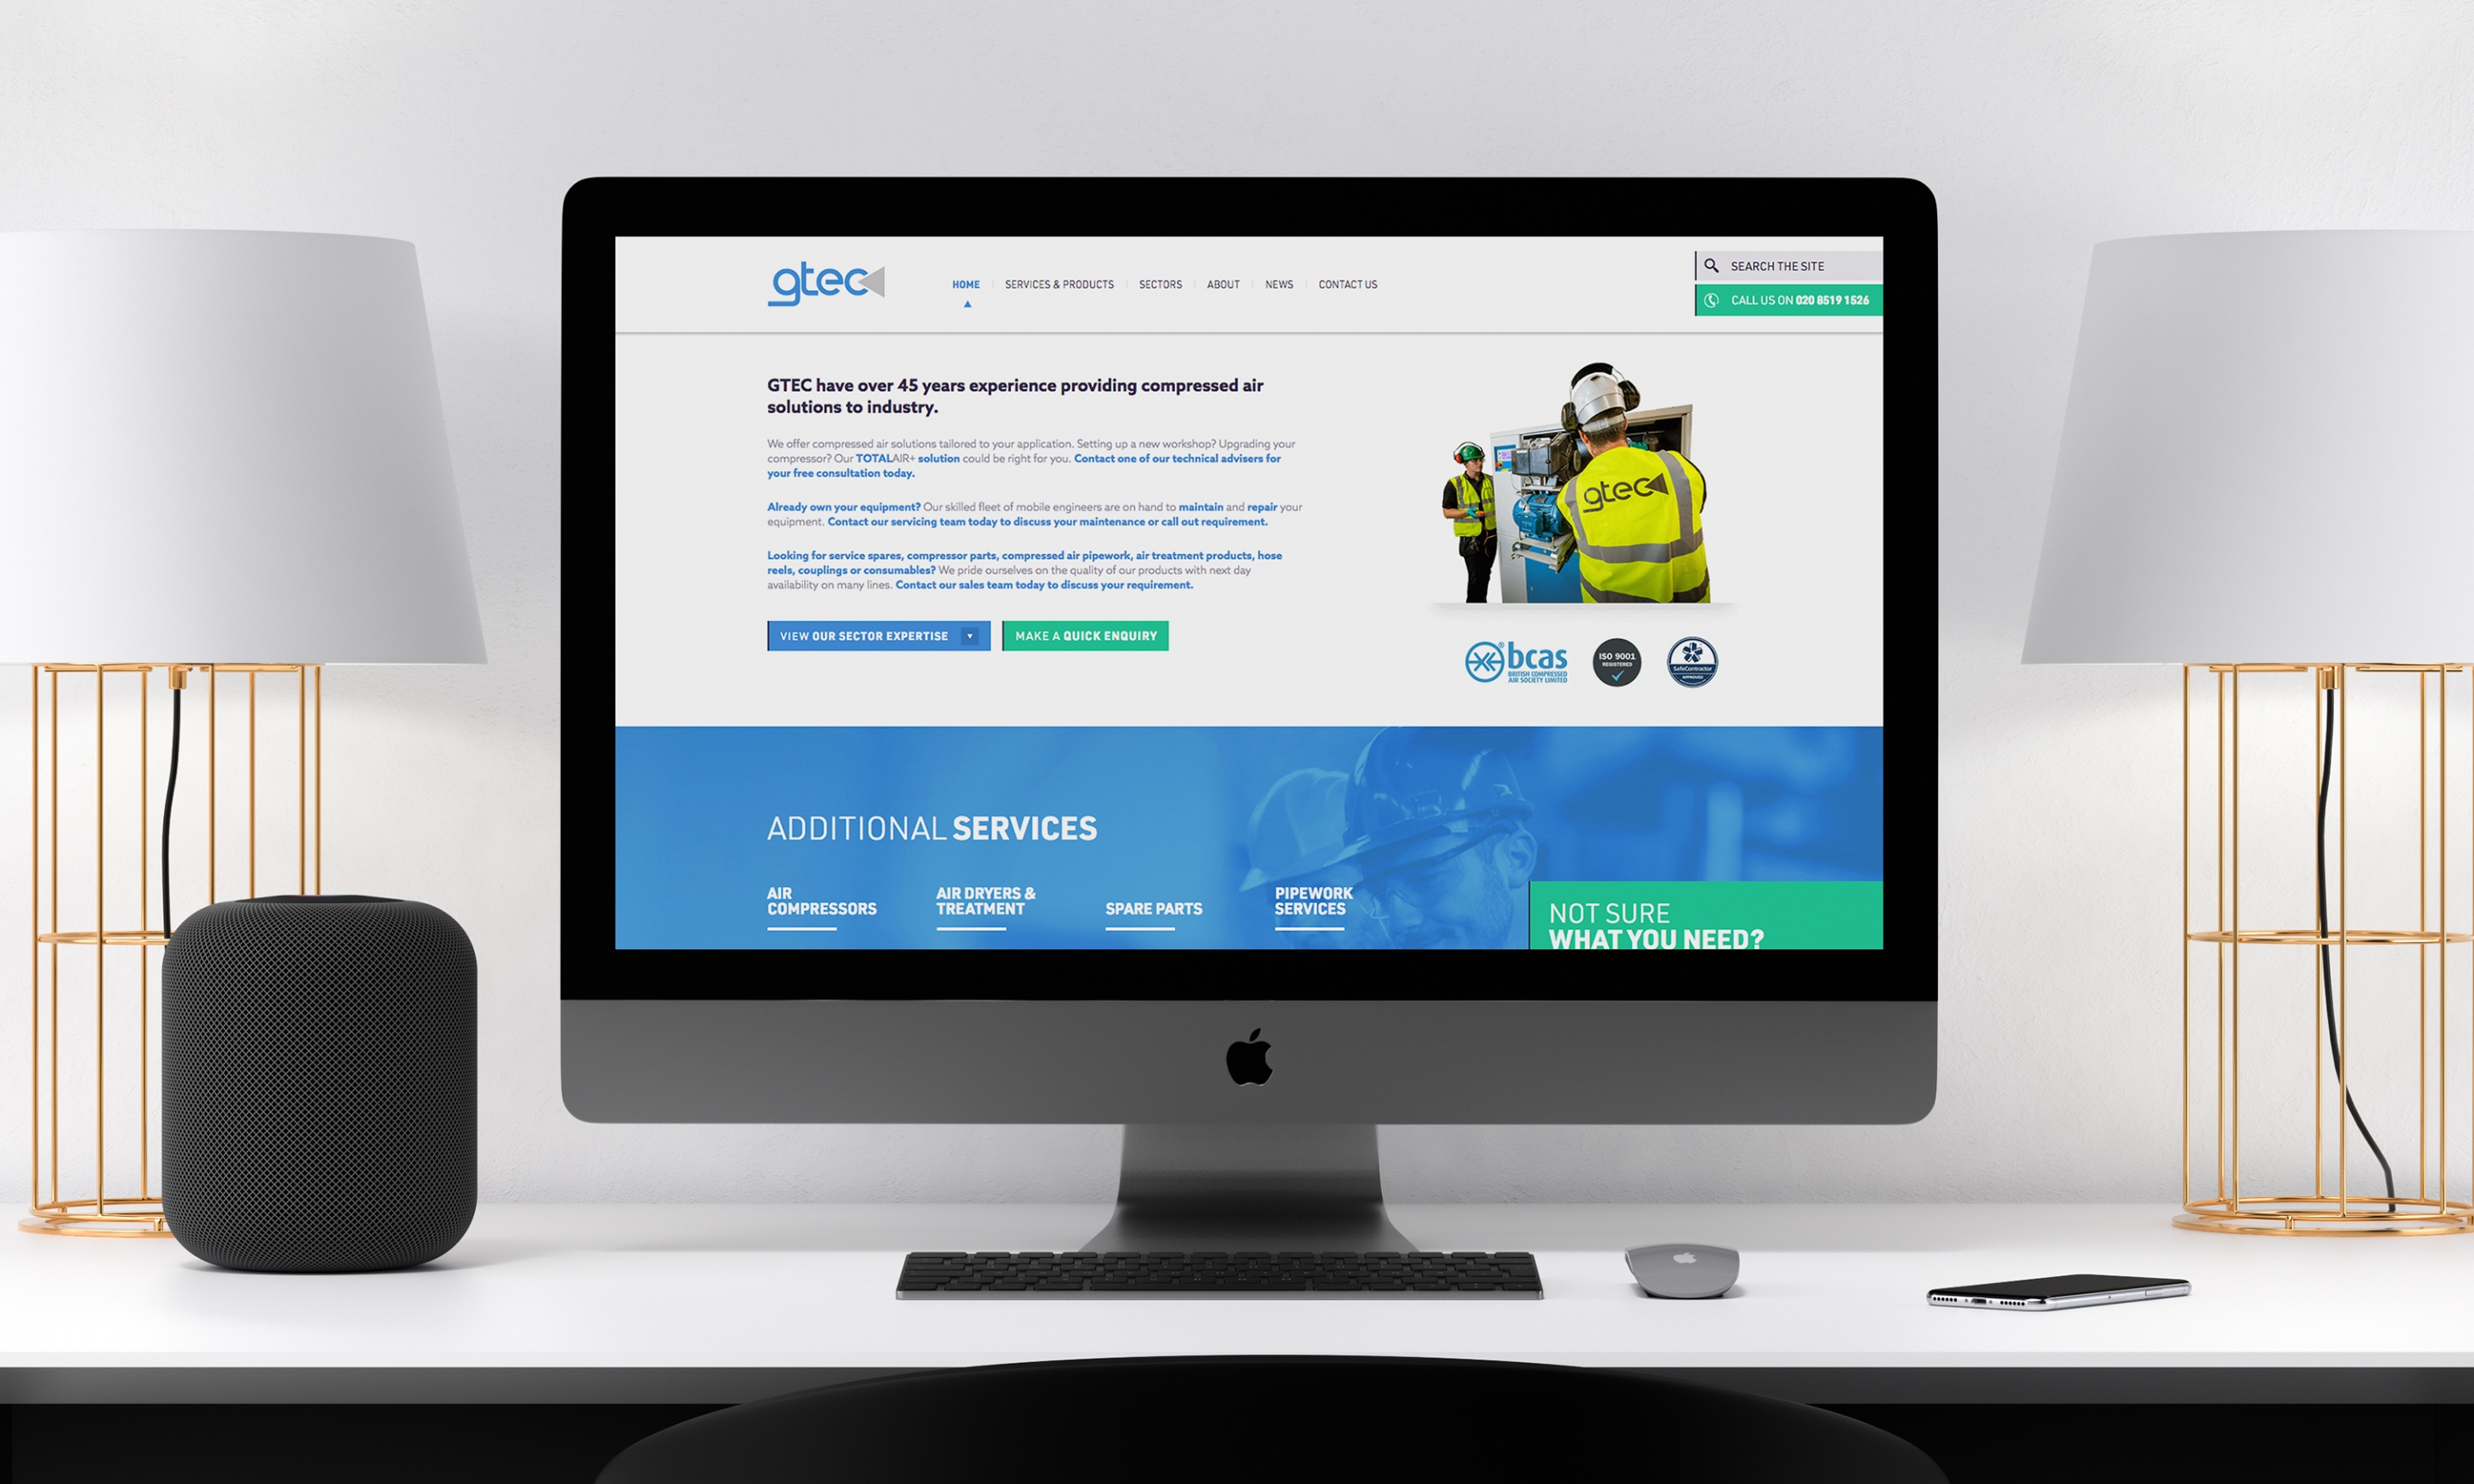 GTEC website design - internal page